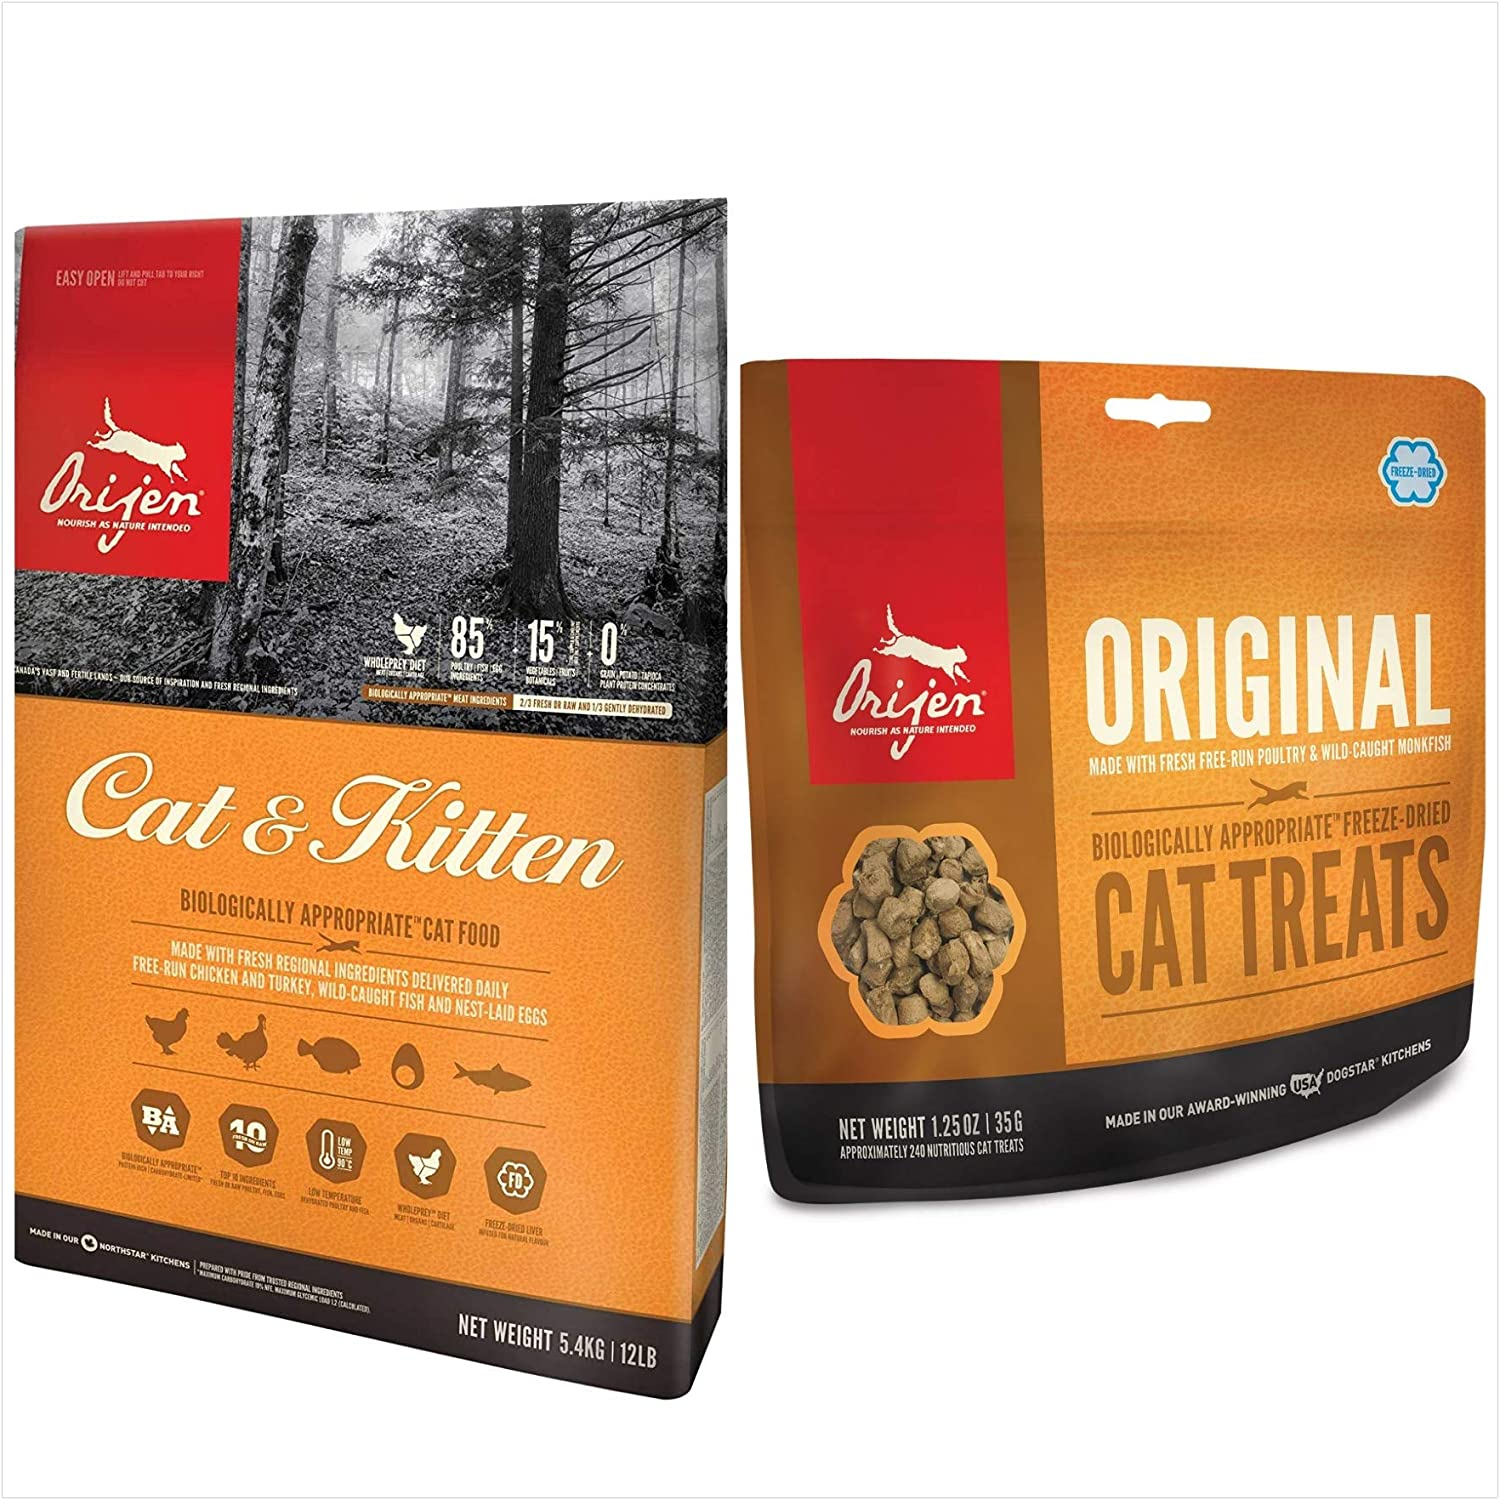 Orijen Original Cat & Kitten Food and Treat Bundle. Featuring (1) Cat & Kitten Food 12 lb. Bag. & (1) Original Cat Treat 1.25 oz.